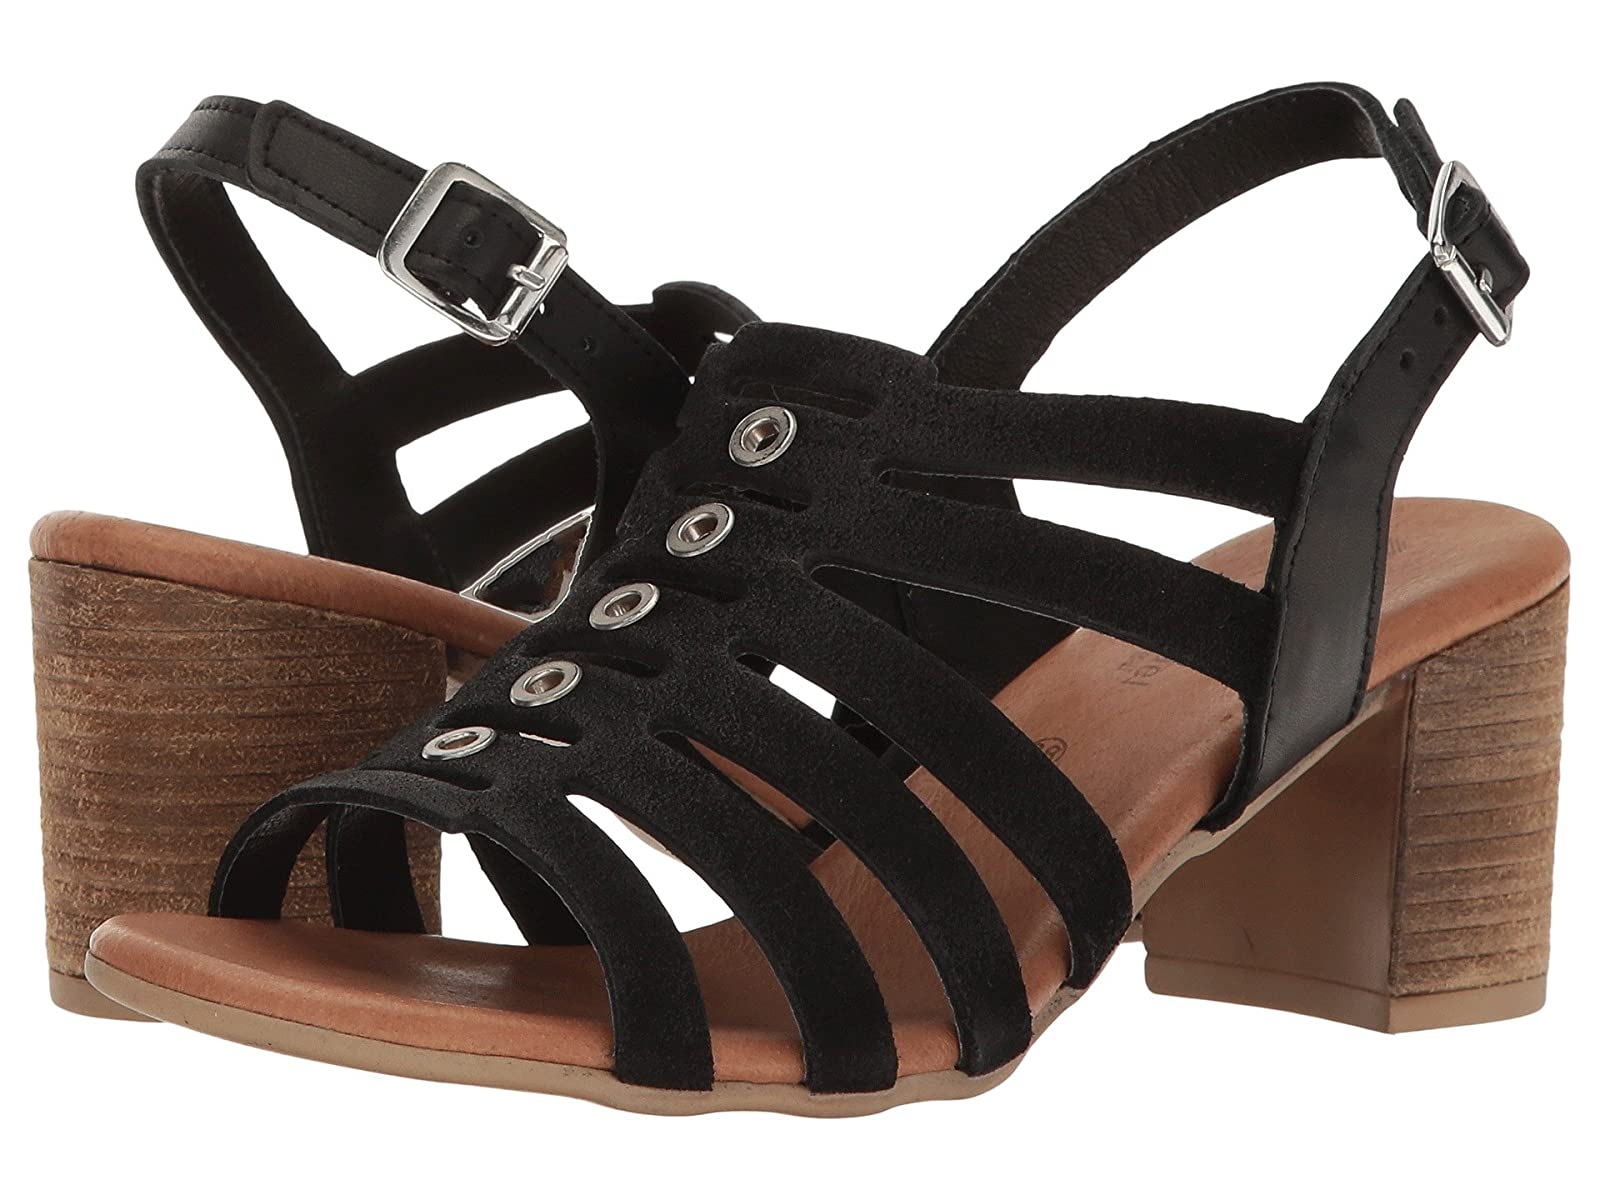 Eric Michael MistyCheap and distinctive eye-catching shoes